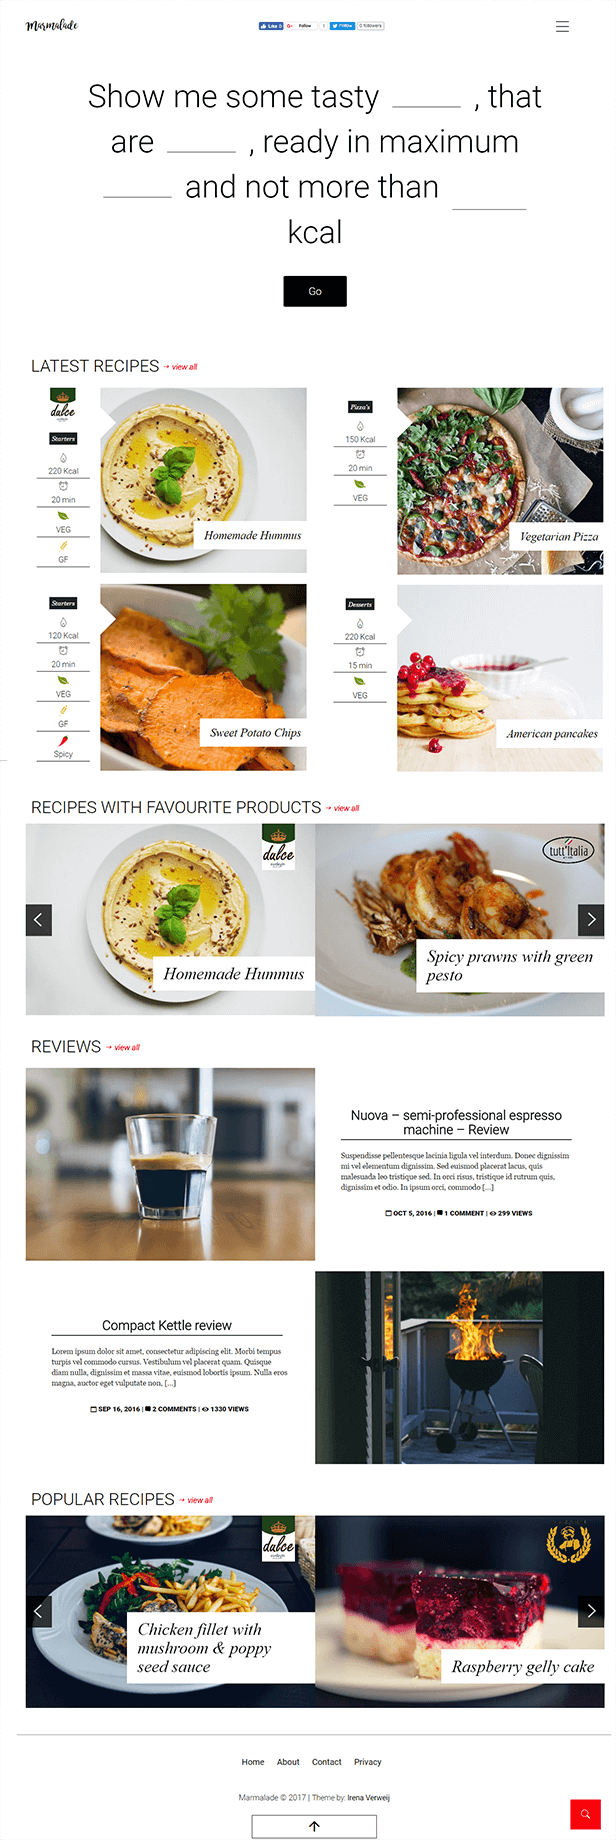 Marmalade - Modern Food Blog theme for WordPress